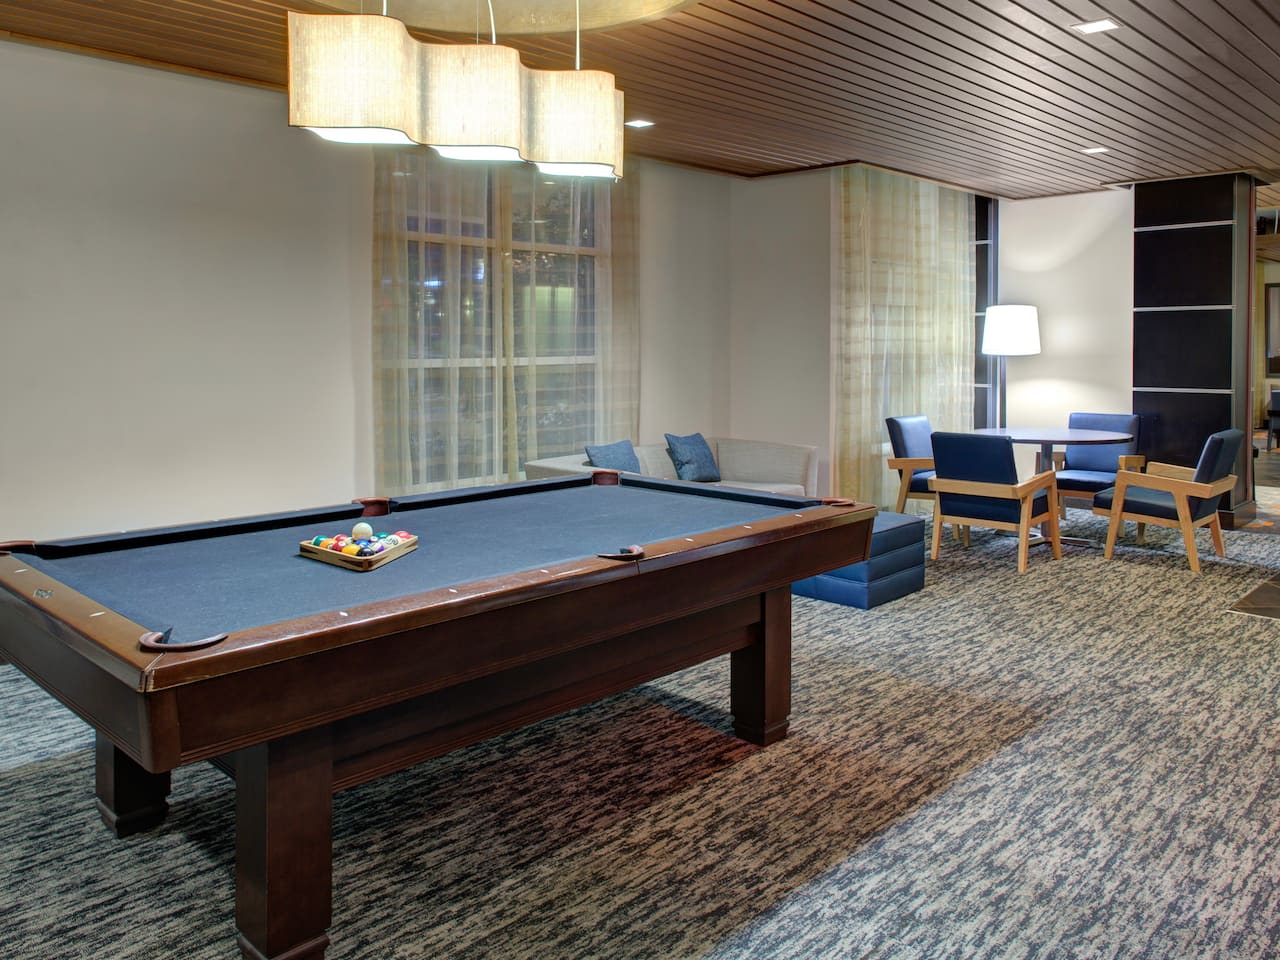 Hyatt House Pool Table